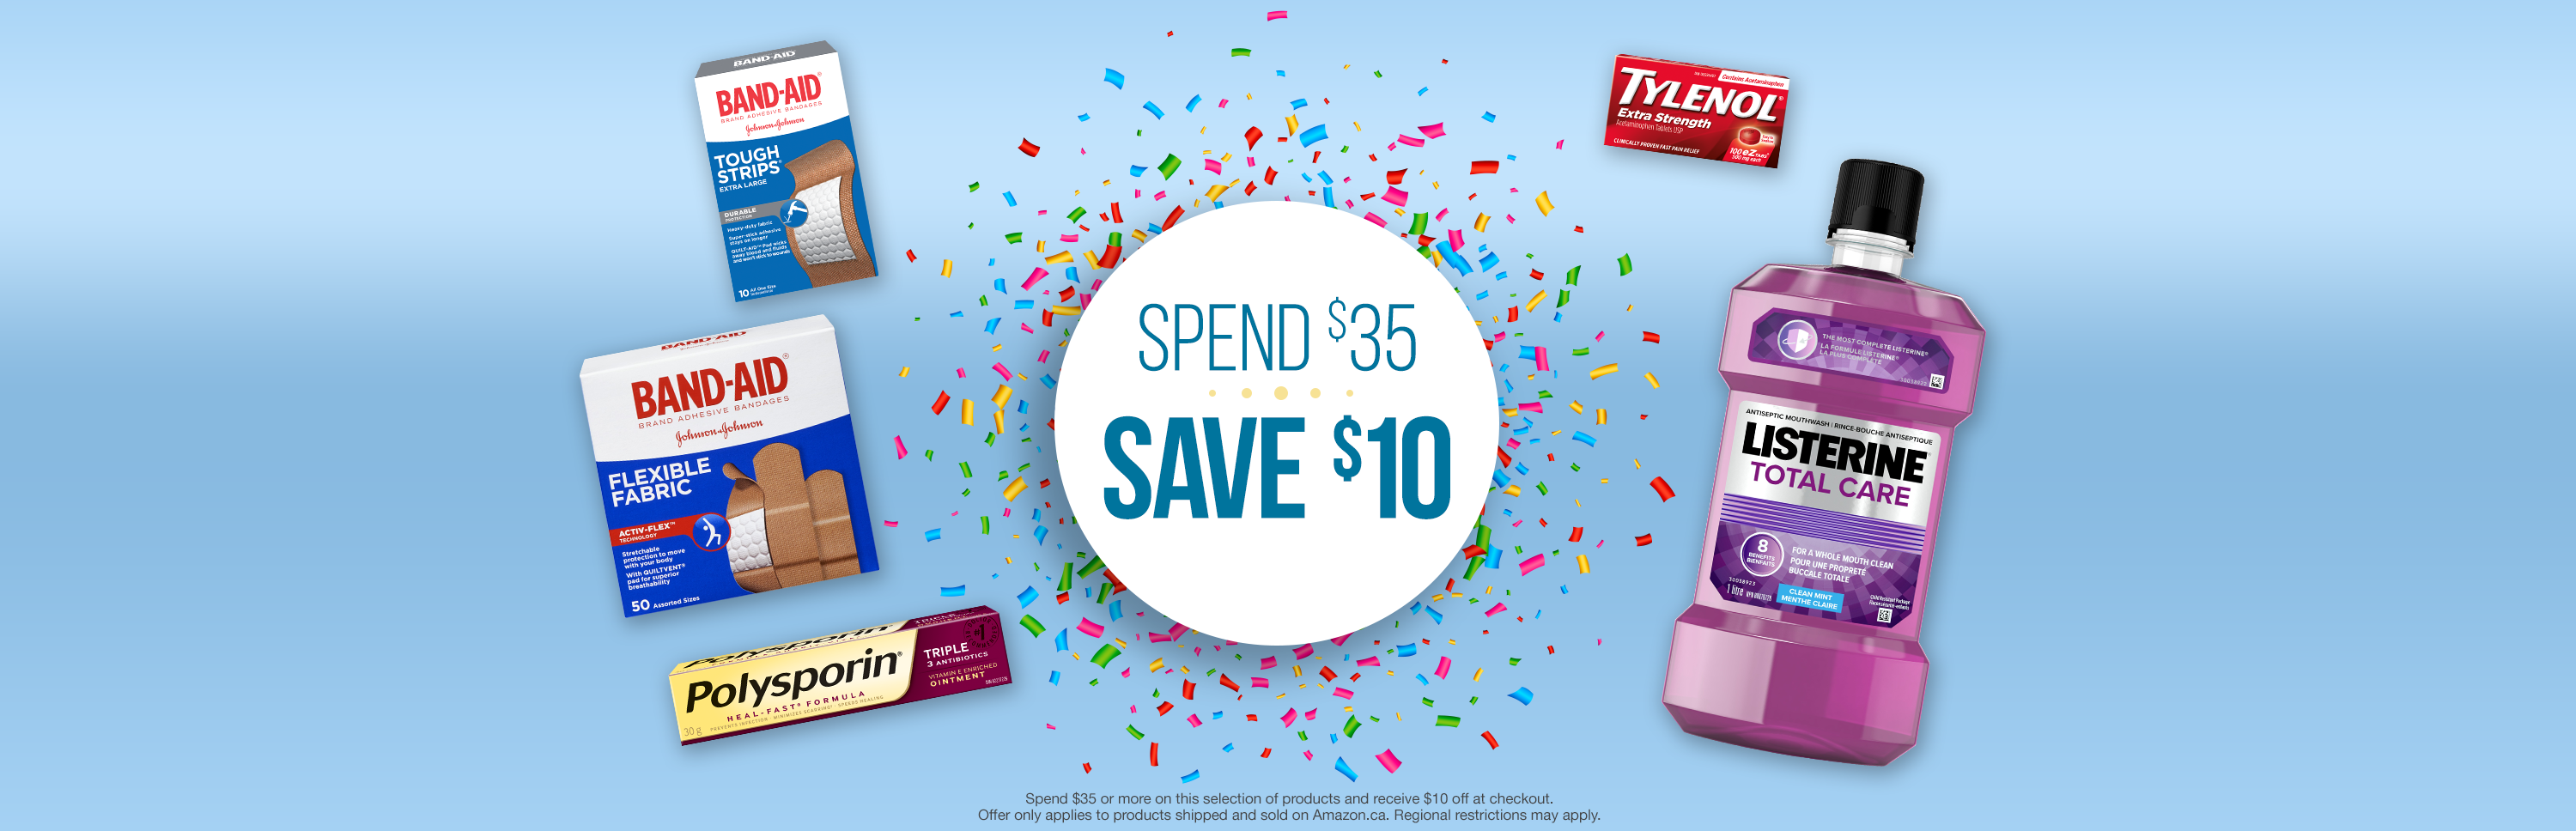 Spend $35 Save $10 with J&J